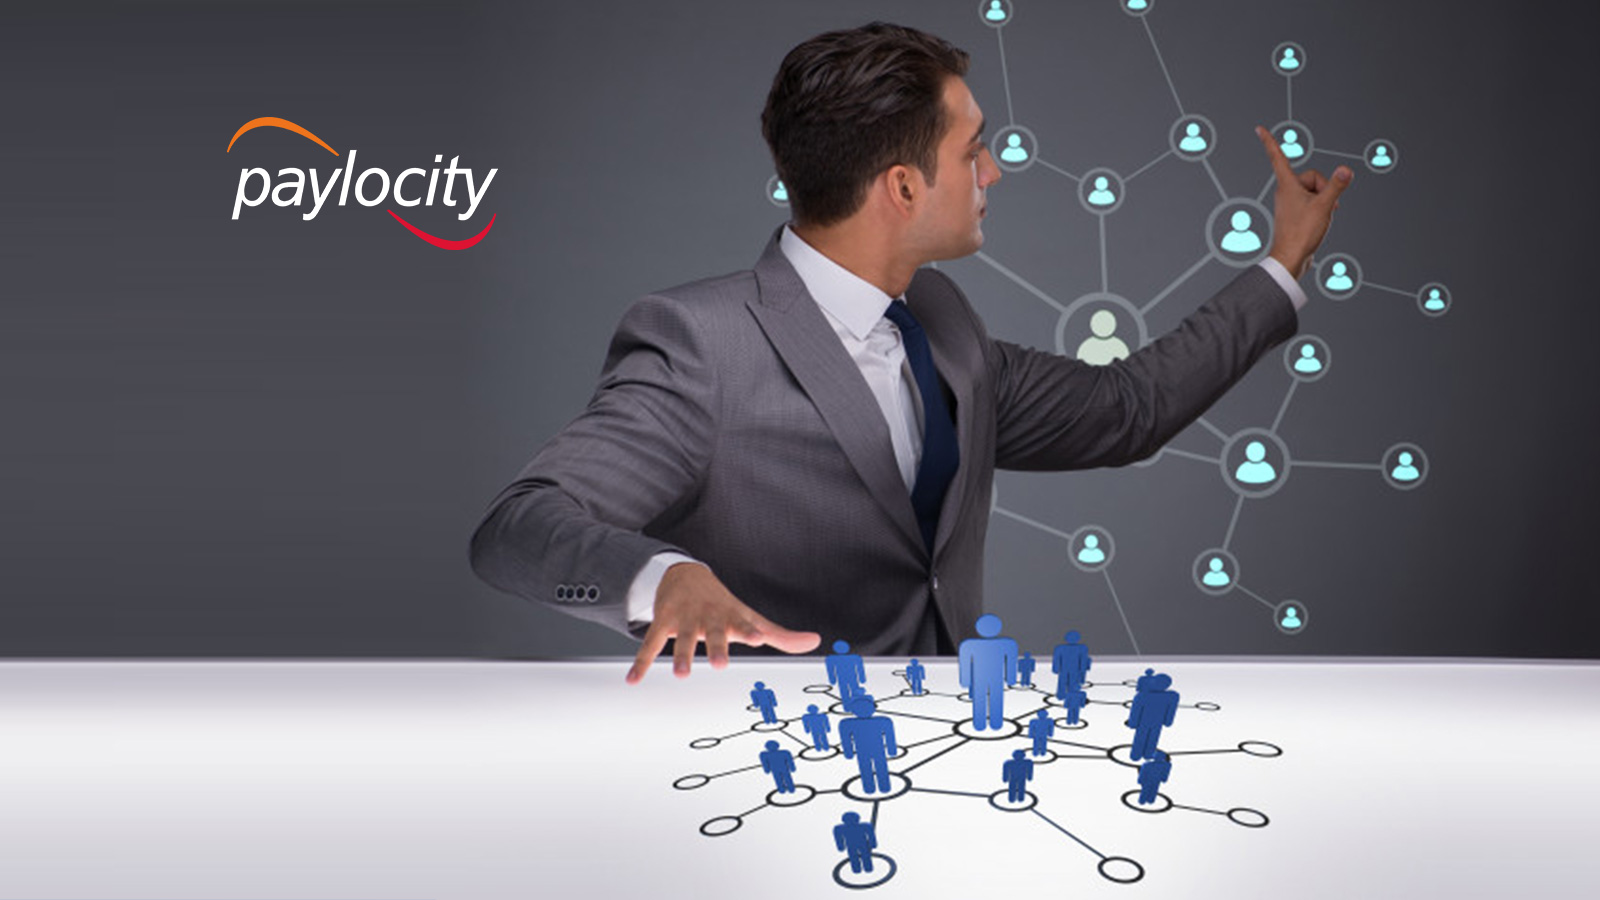 Access Paylocity paylocity enhances product suite to help organizations